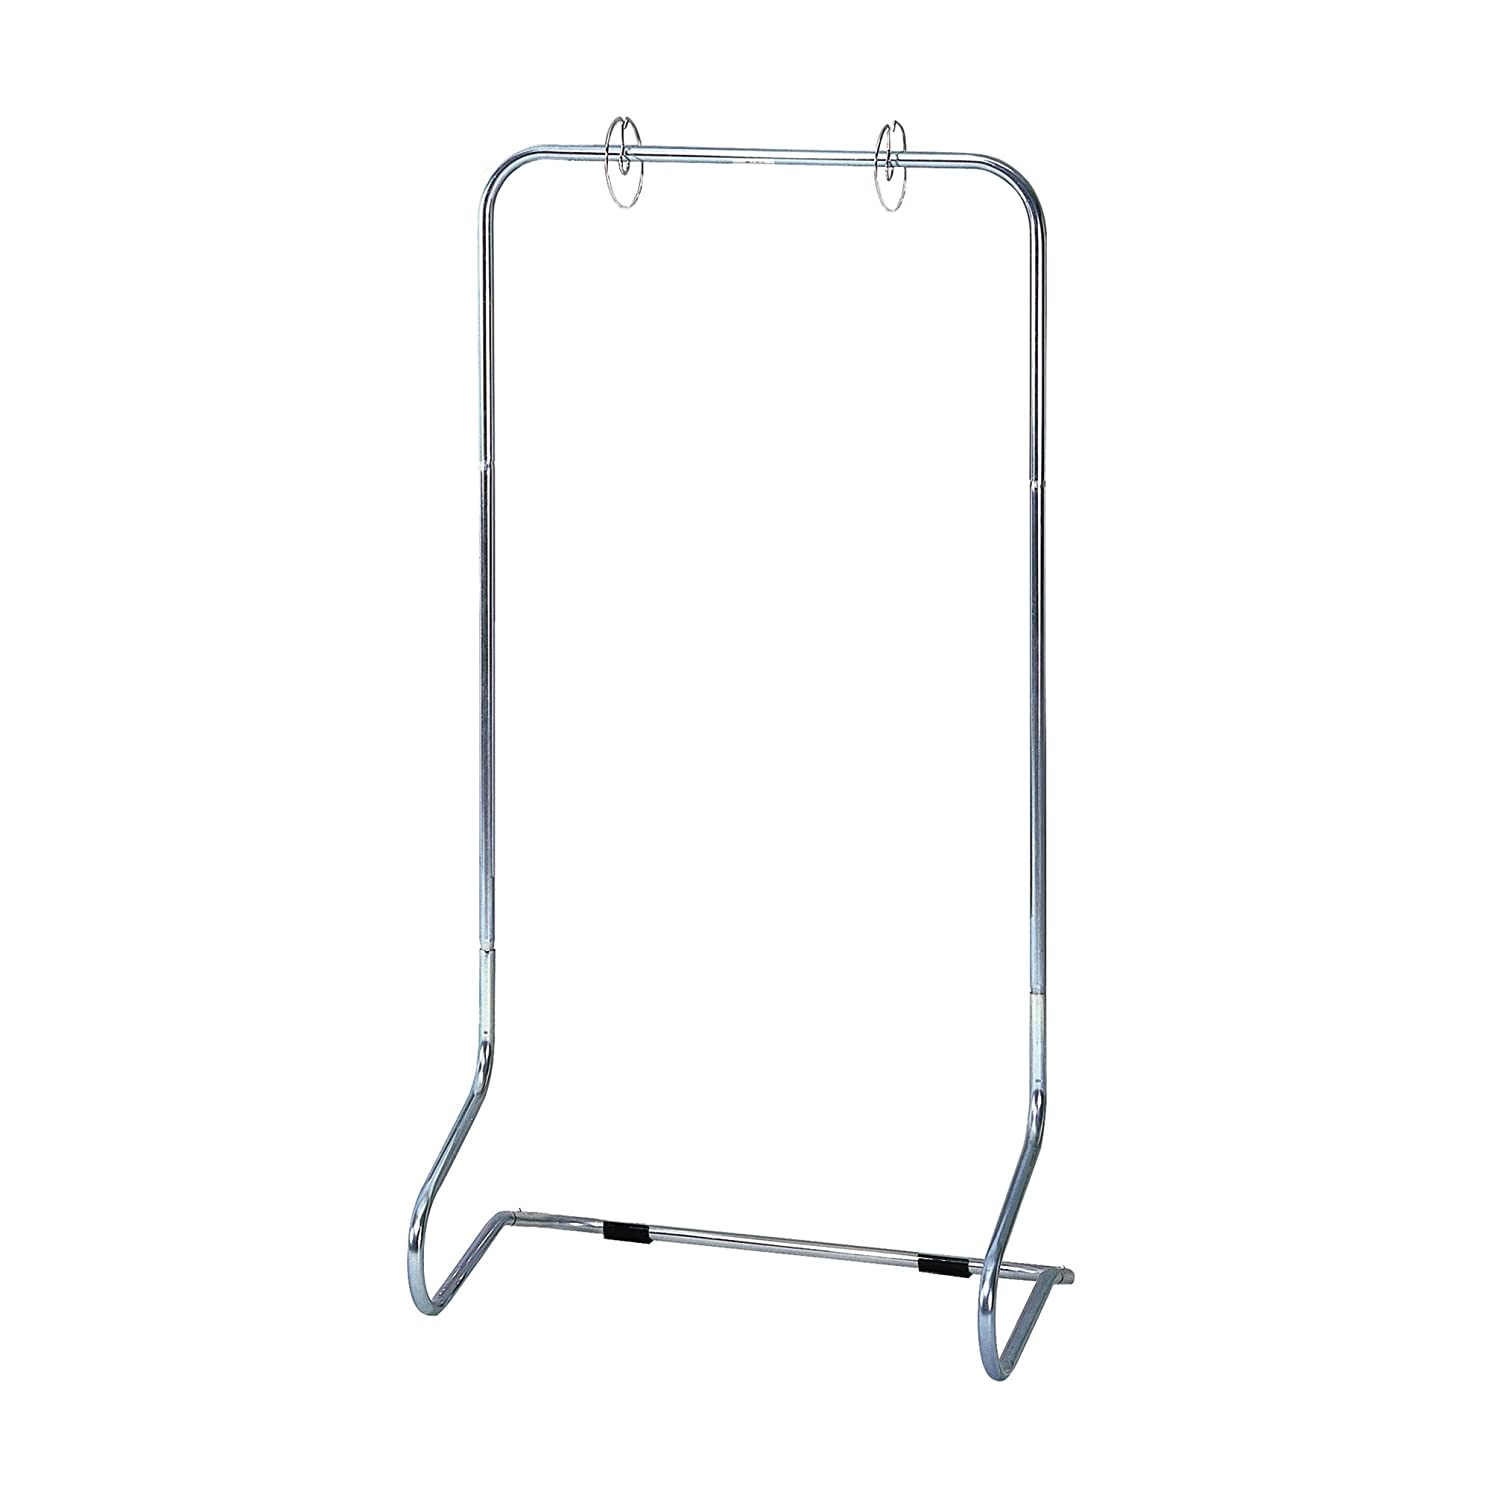 Pacon 0074400 Chart Stand, Metal, Rubber Tipped Legs